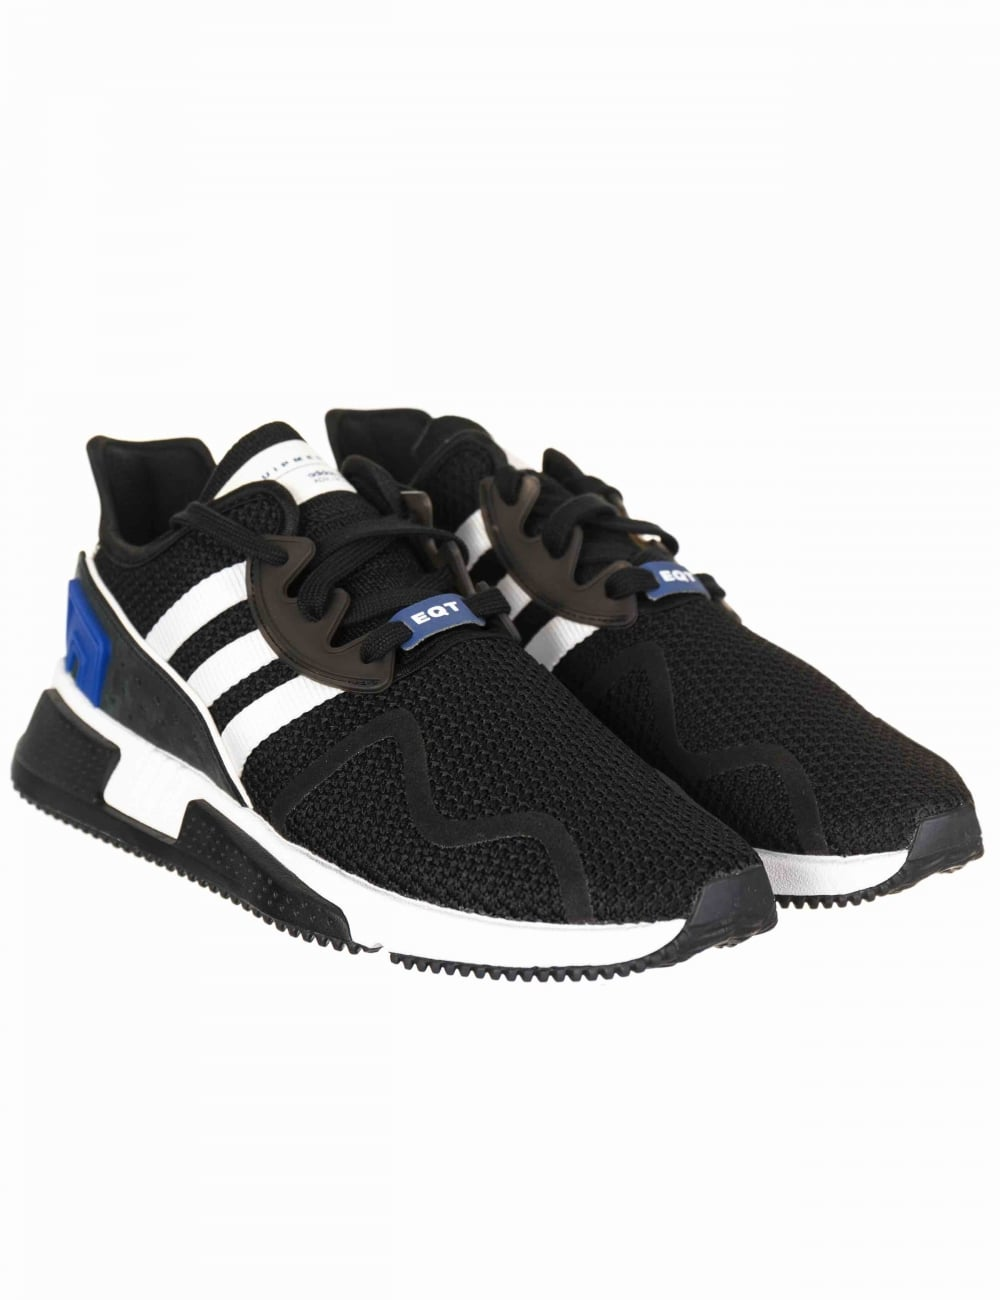 Adidas Originals EQT Cushion ADV Trainers - Black (Blue Pack ... eb1ef61ad